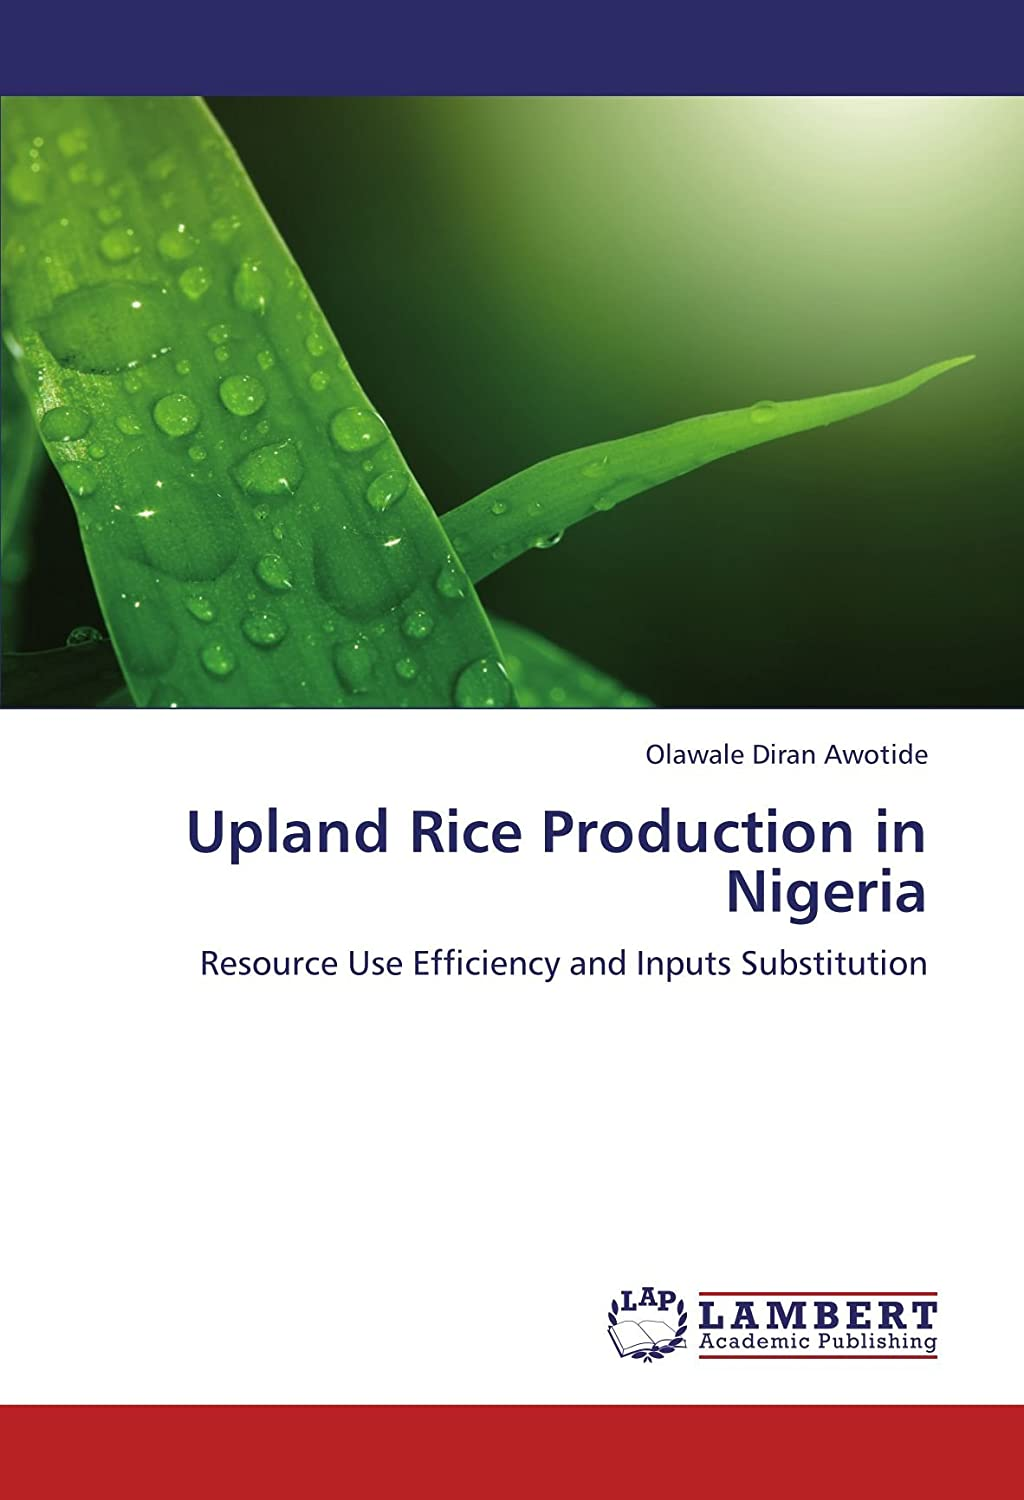 Upland Rice Production in Nigeria